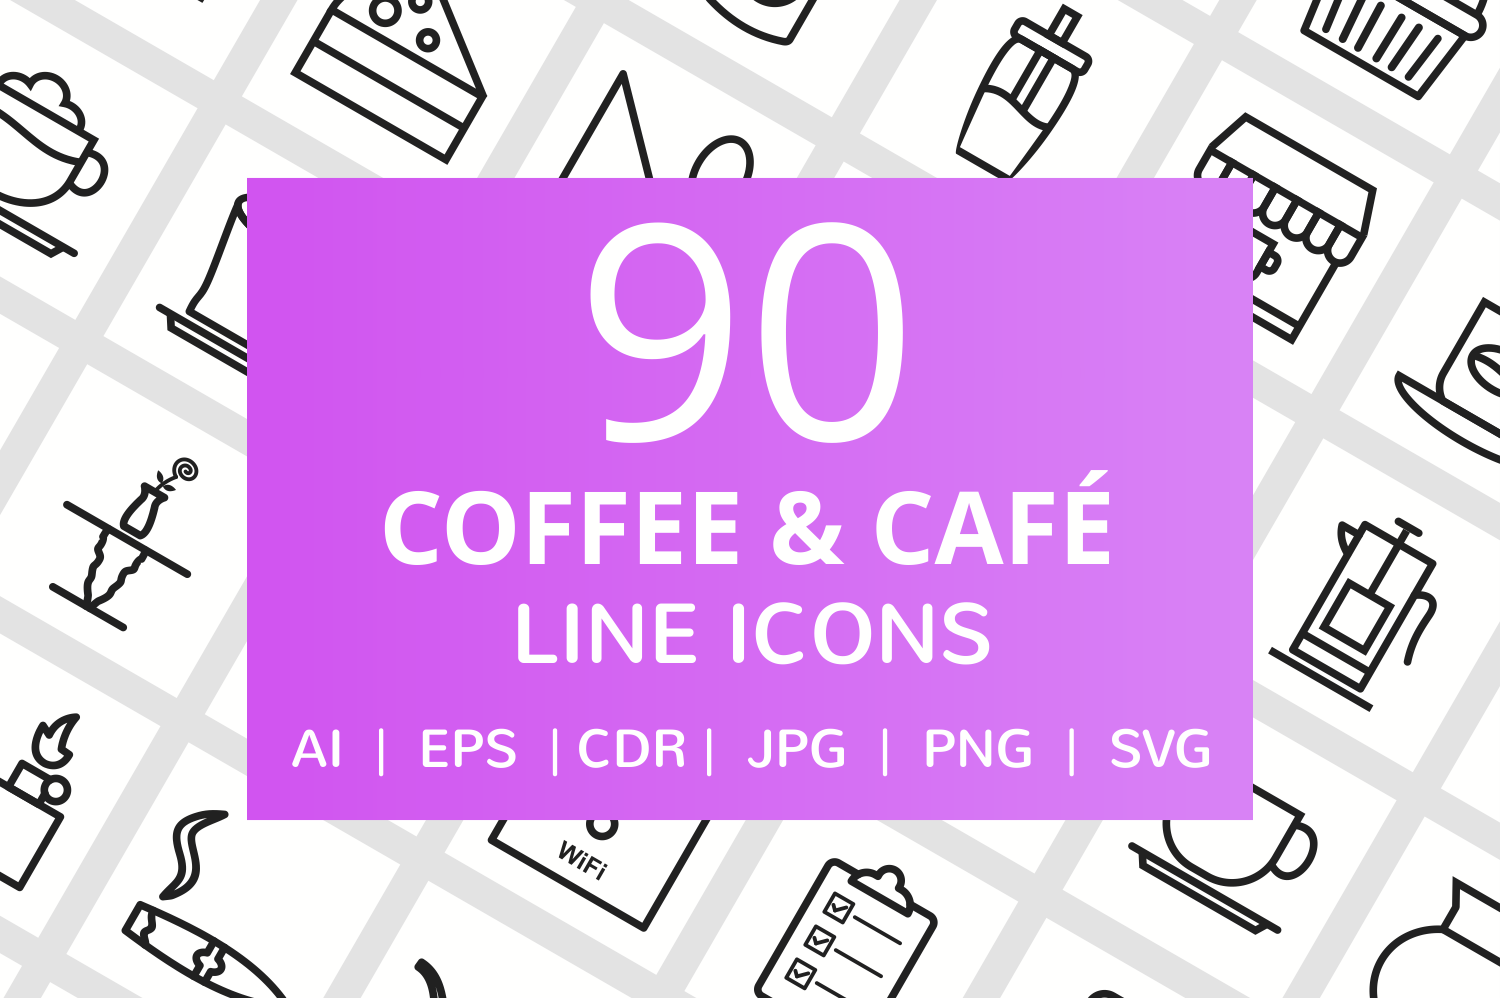 90 Coffee & Cafe Line Icons example image 1